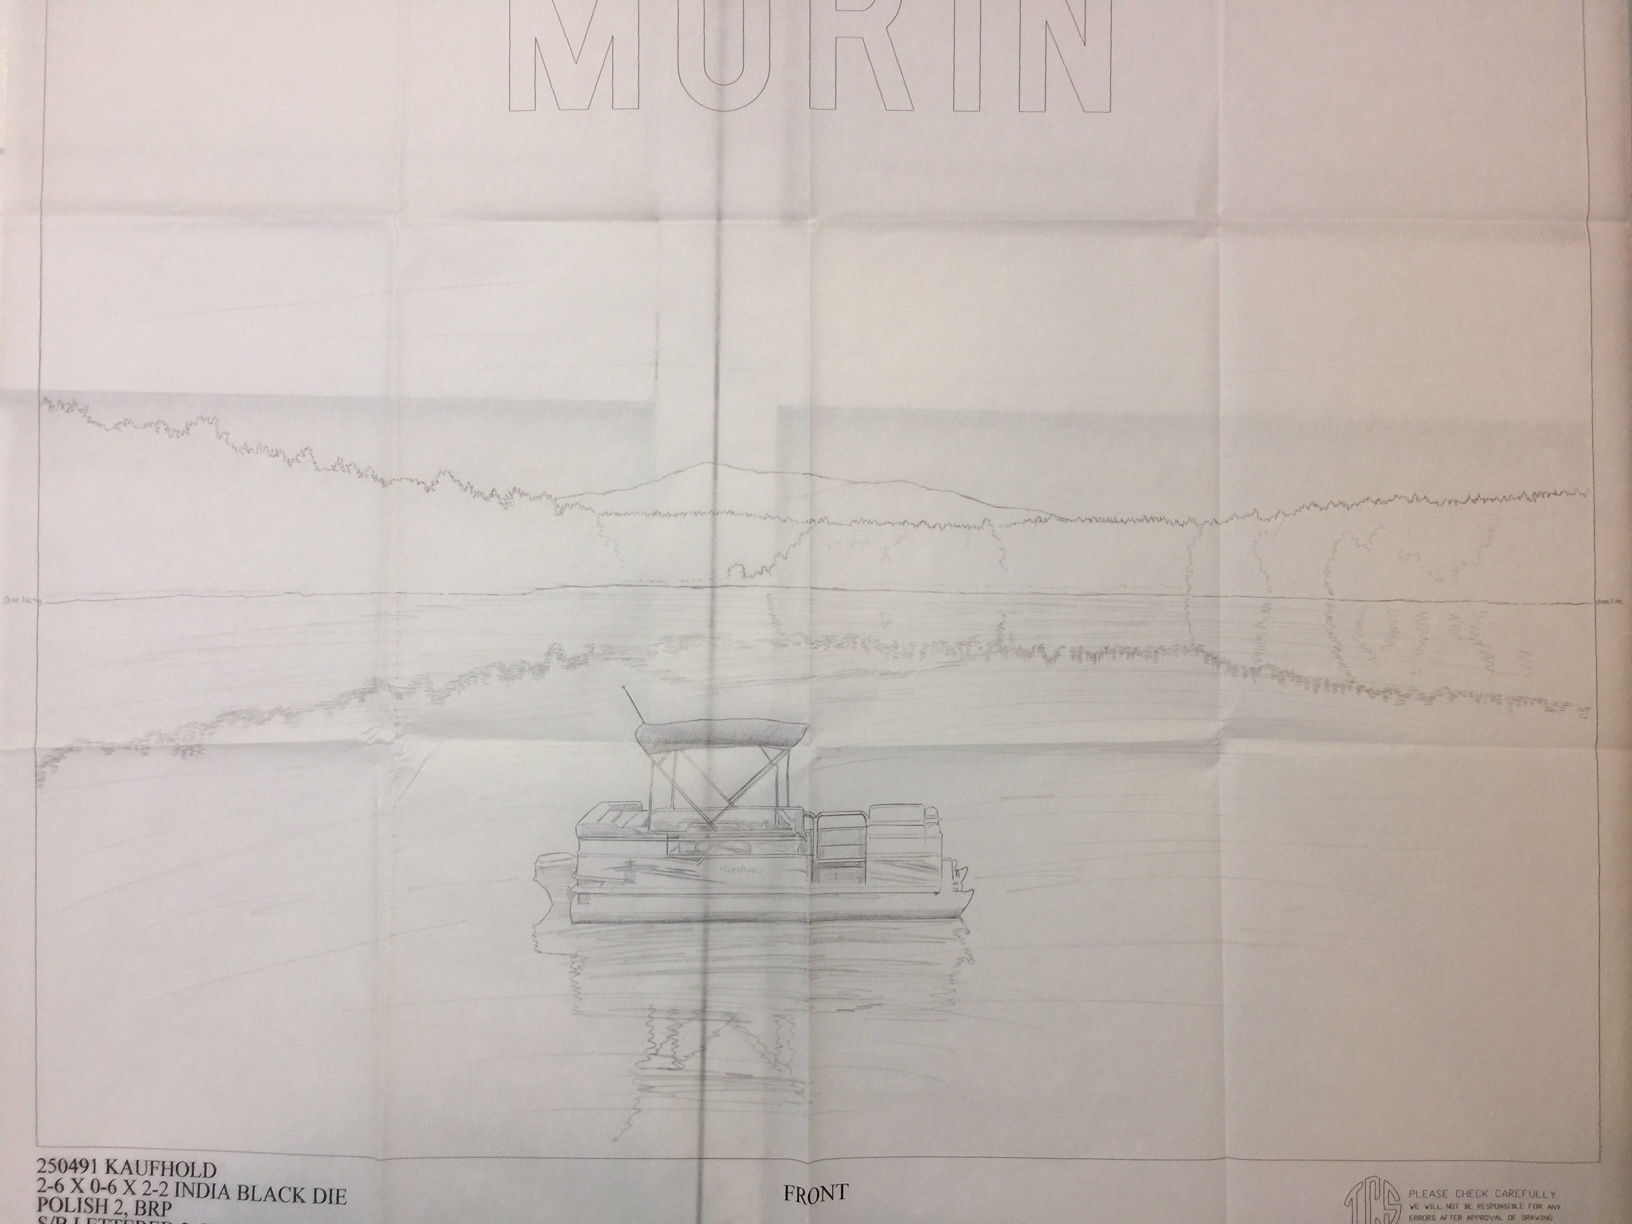 First Draft Full Size Drawing of Hand Etching and Glass Art Design